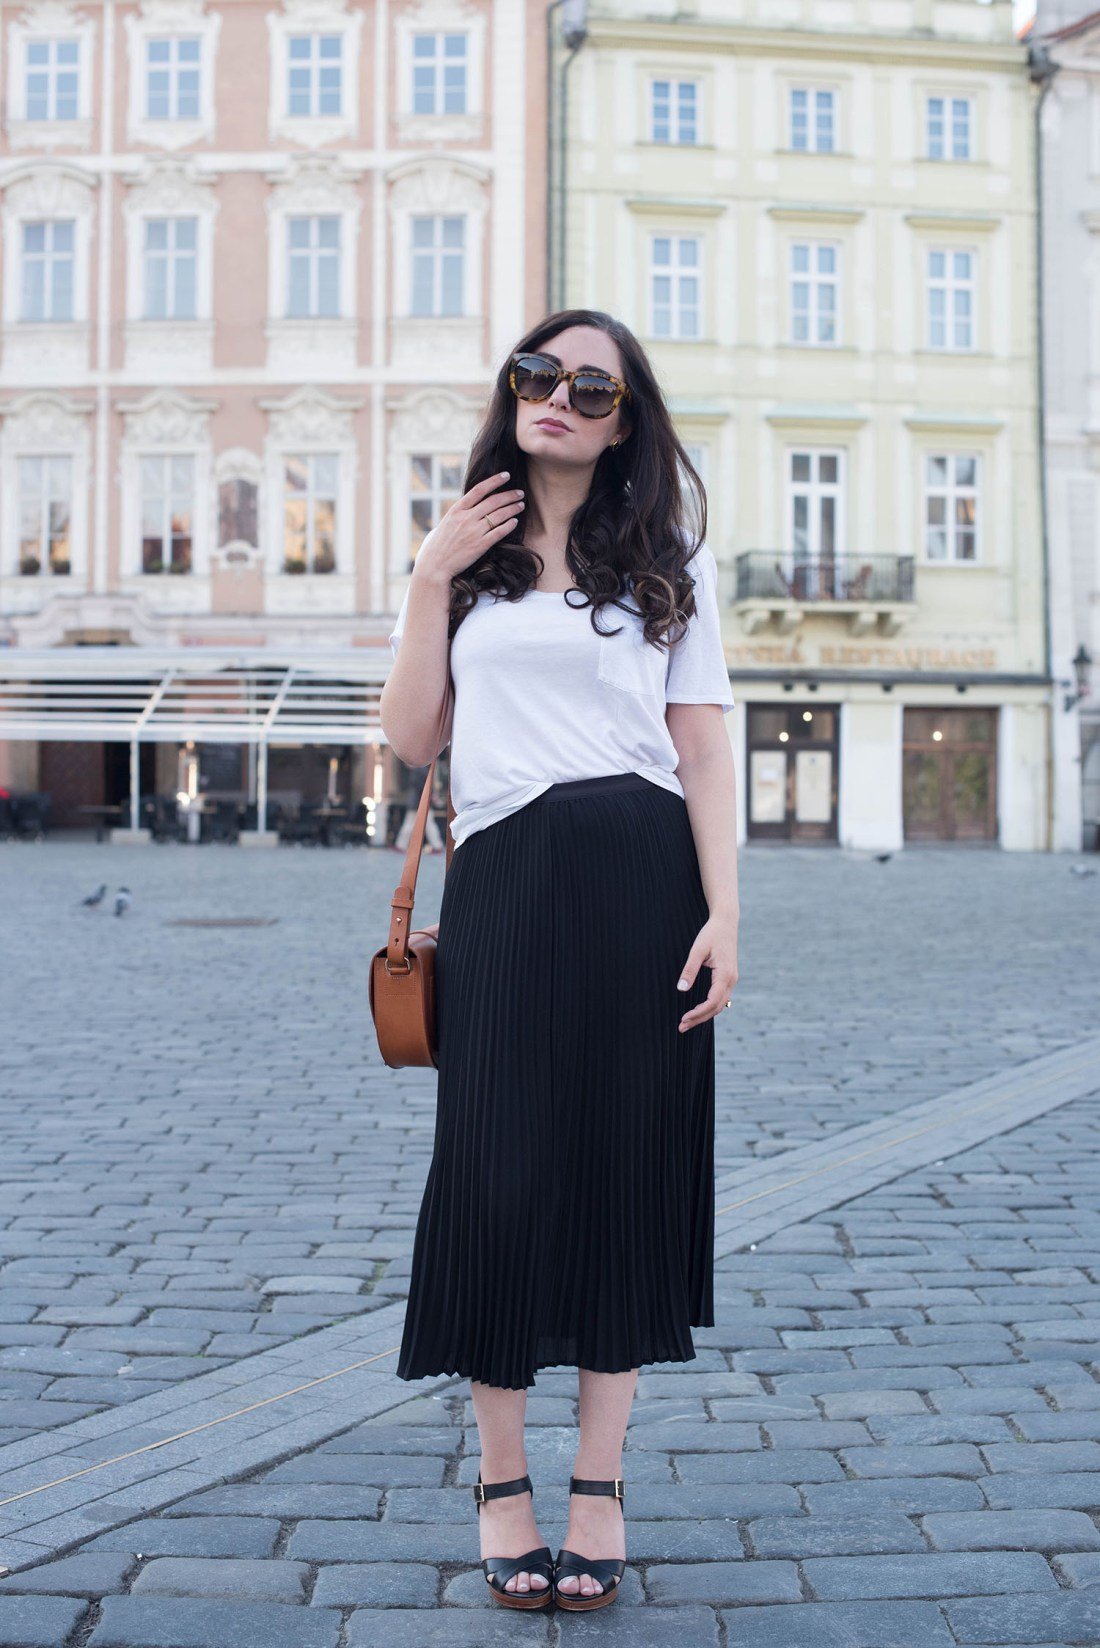 Fashion blogger Cee Fardoe of Coco & Vera stands at Old Town Square in Prague wearing a black pleated Aritzia skirt and Le Chateau sandals